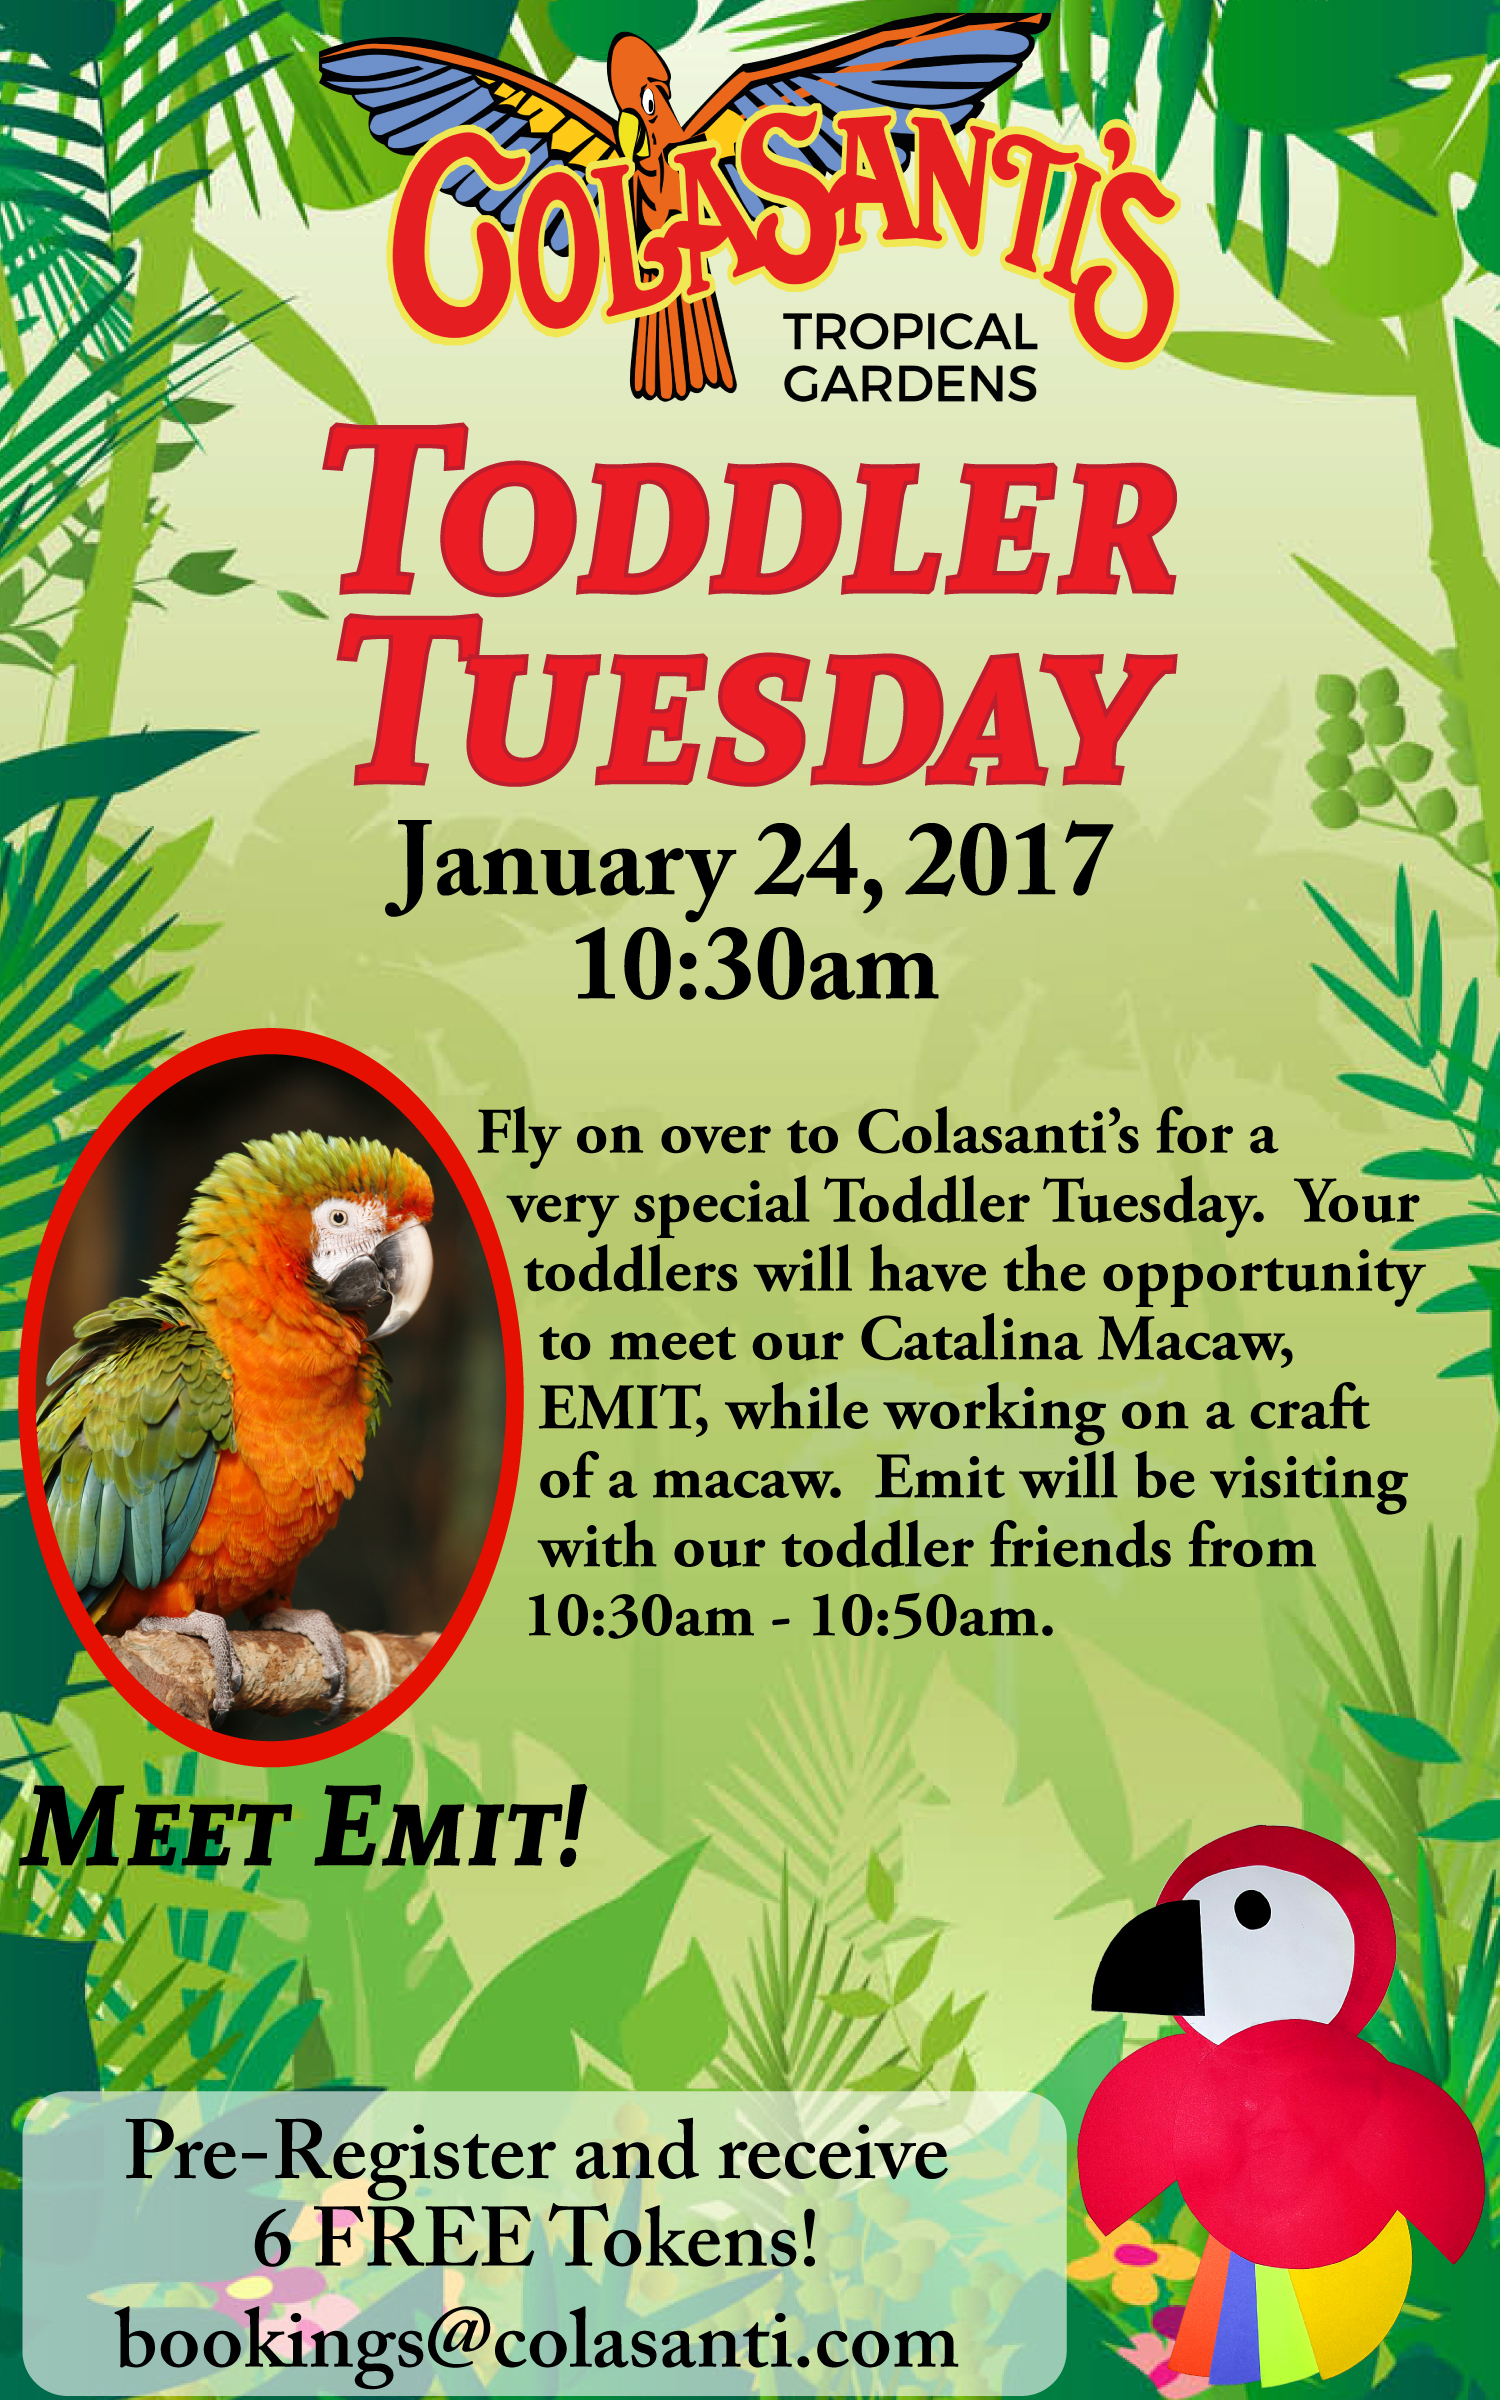 Colasanti's Toddler Tuesday Jan 24, 2017 Macaw